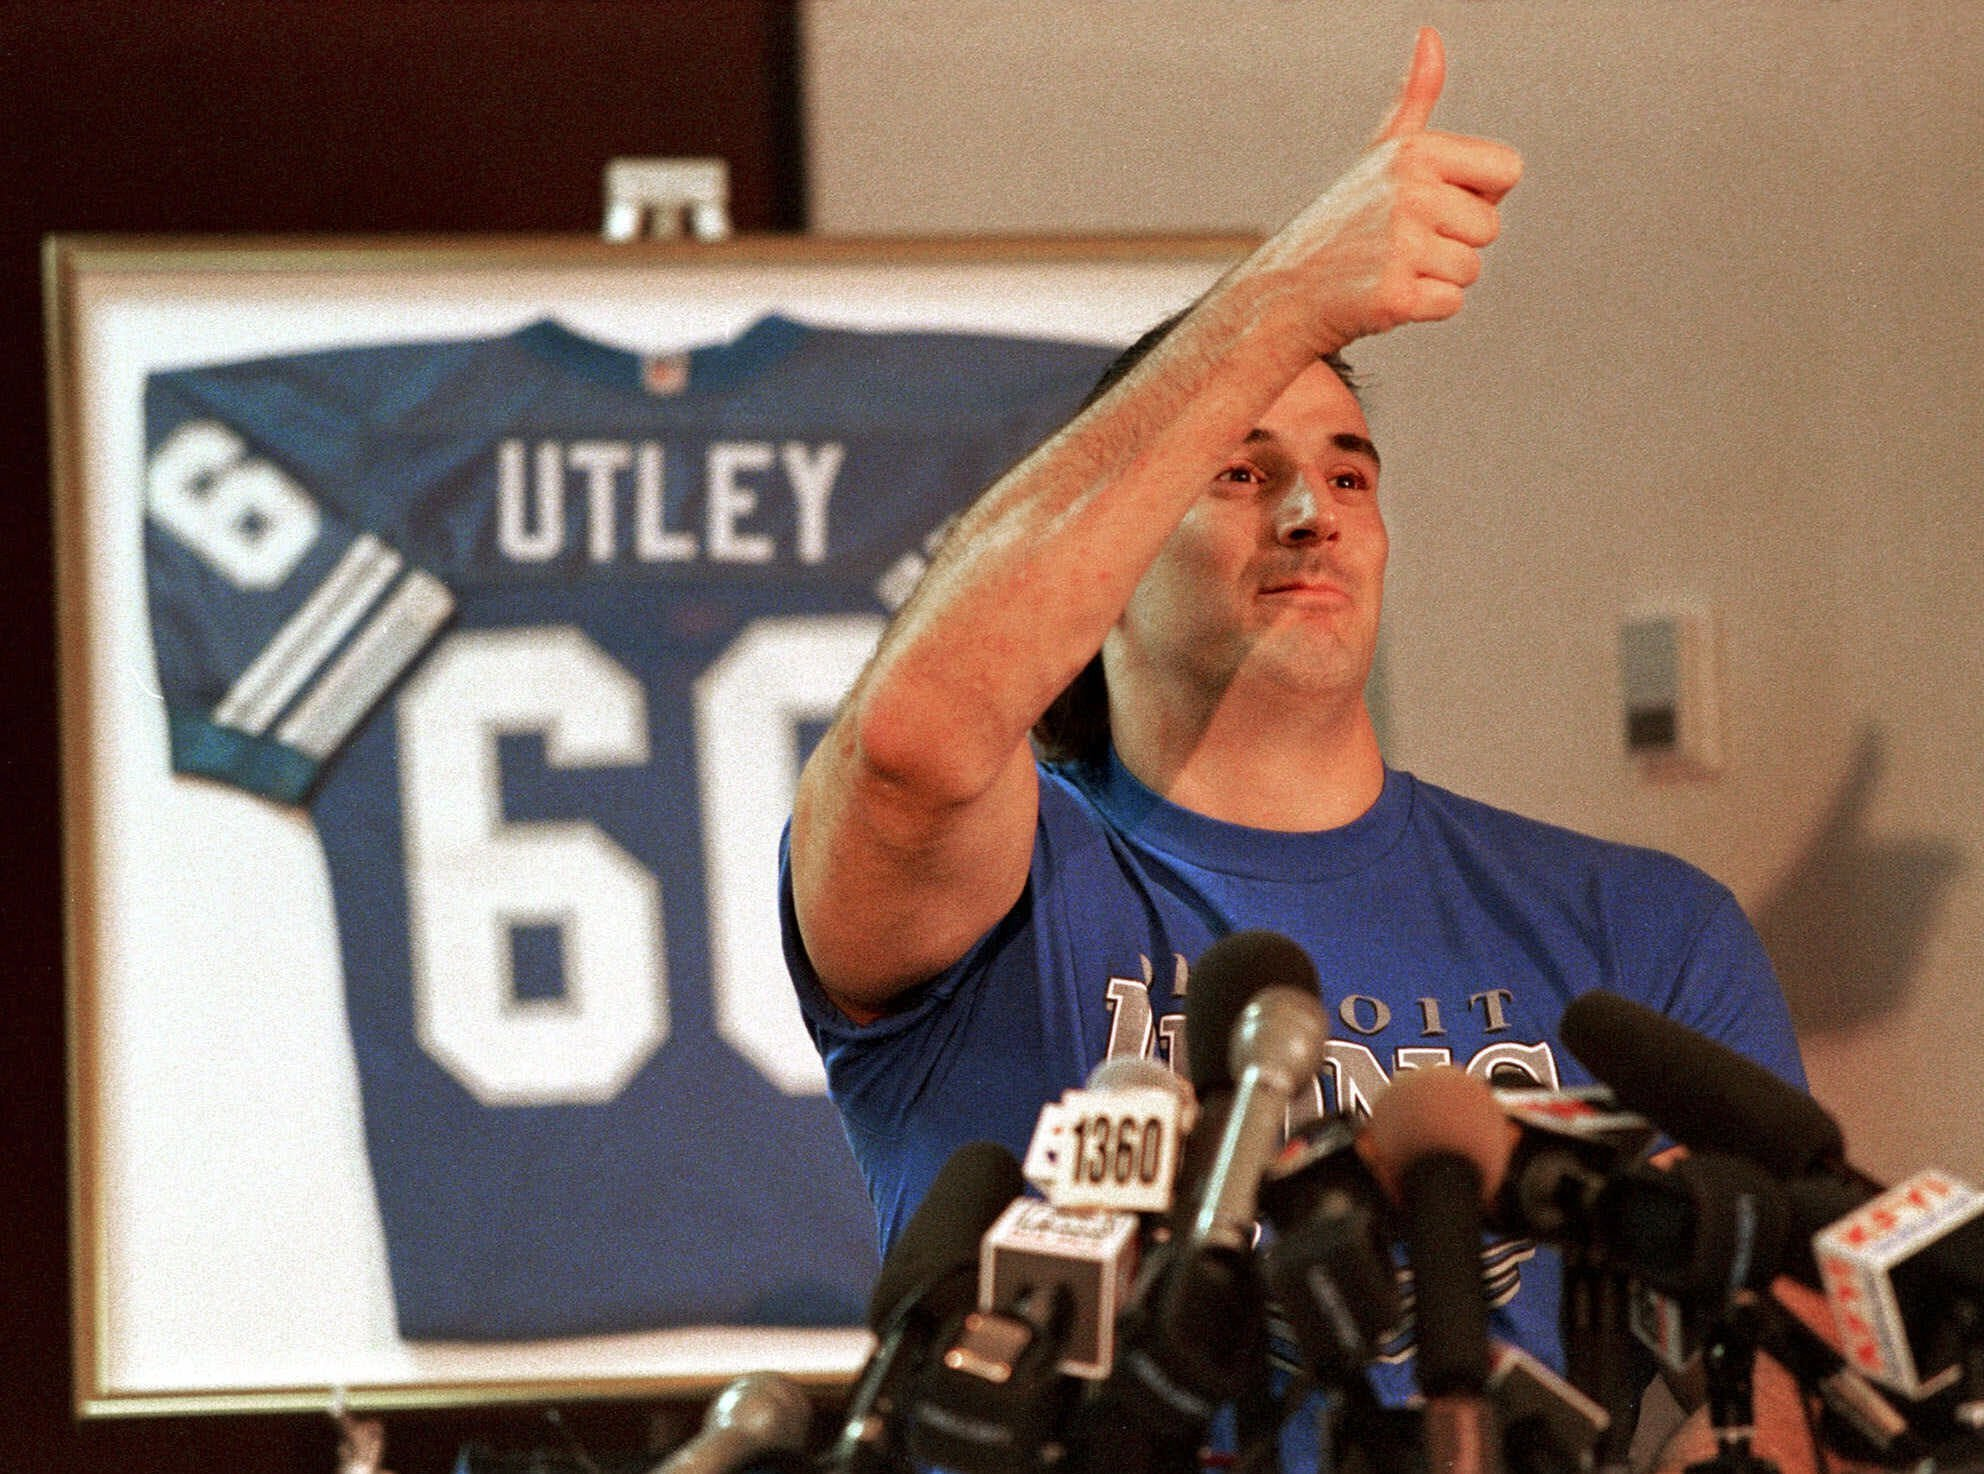 FILE - In this Feb. 15, 1999 file photo, former Detroit Lions guard and Washington State lineman Mike Utley gives the thumbs-up after successfully walking from his wheelchair at a Phoenix hotel. On Tuesday, Dec. 6, 2016, Utley is part of the National Foot